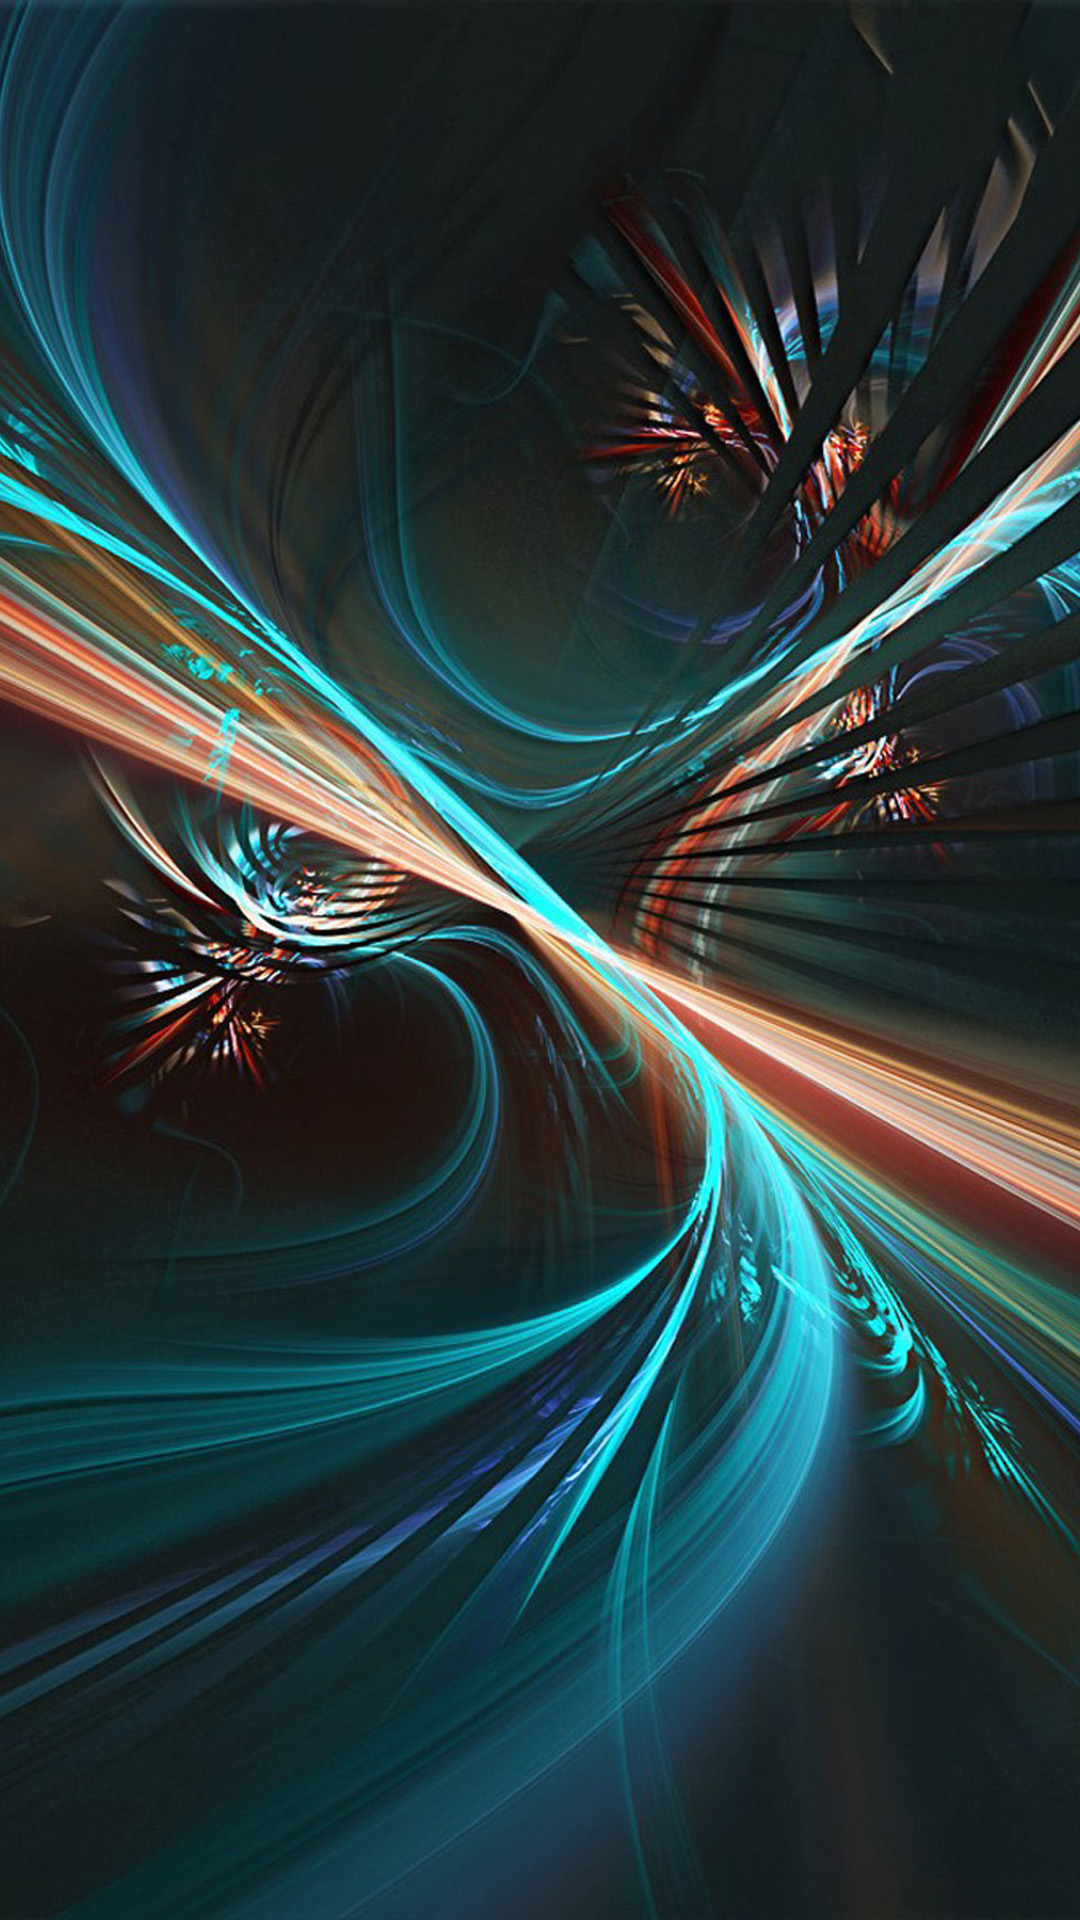 Abstract 3d 02 android wallpaper android hd wallpapers voltagebd